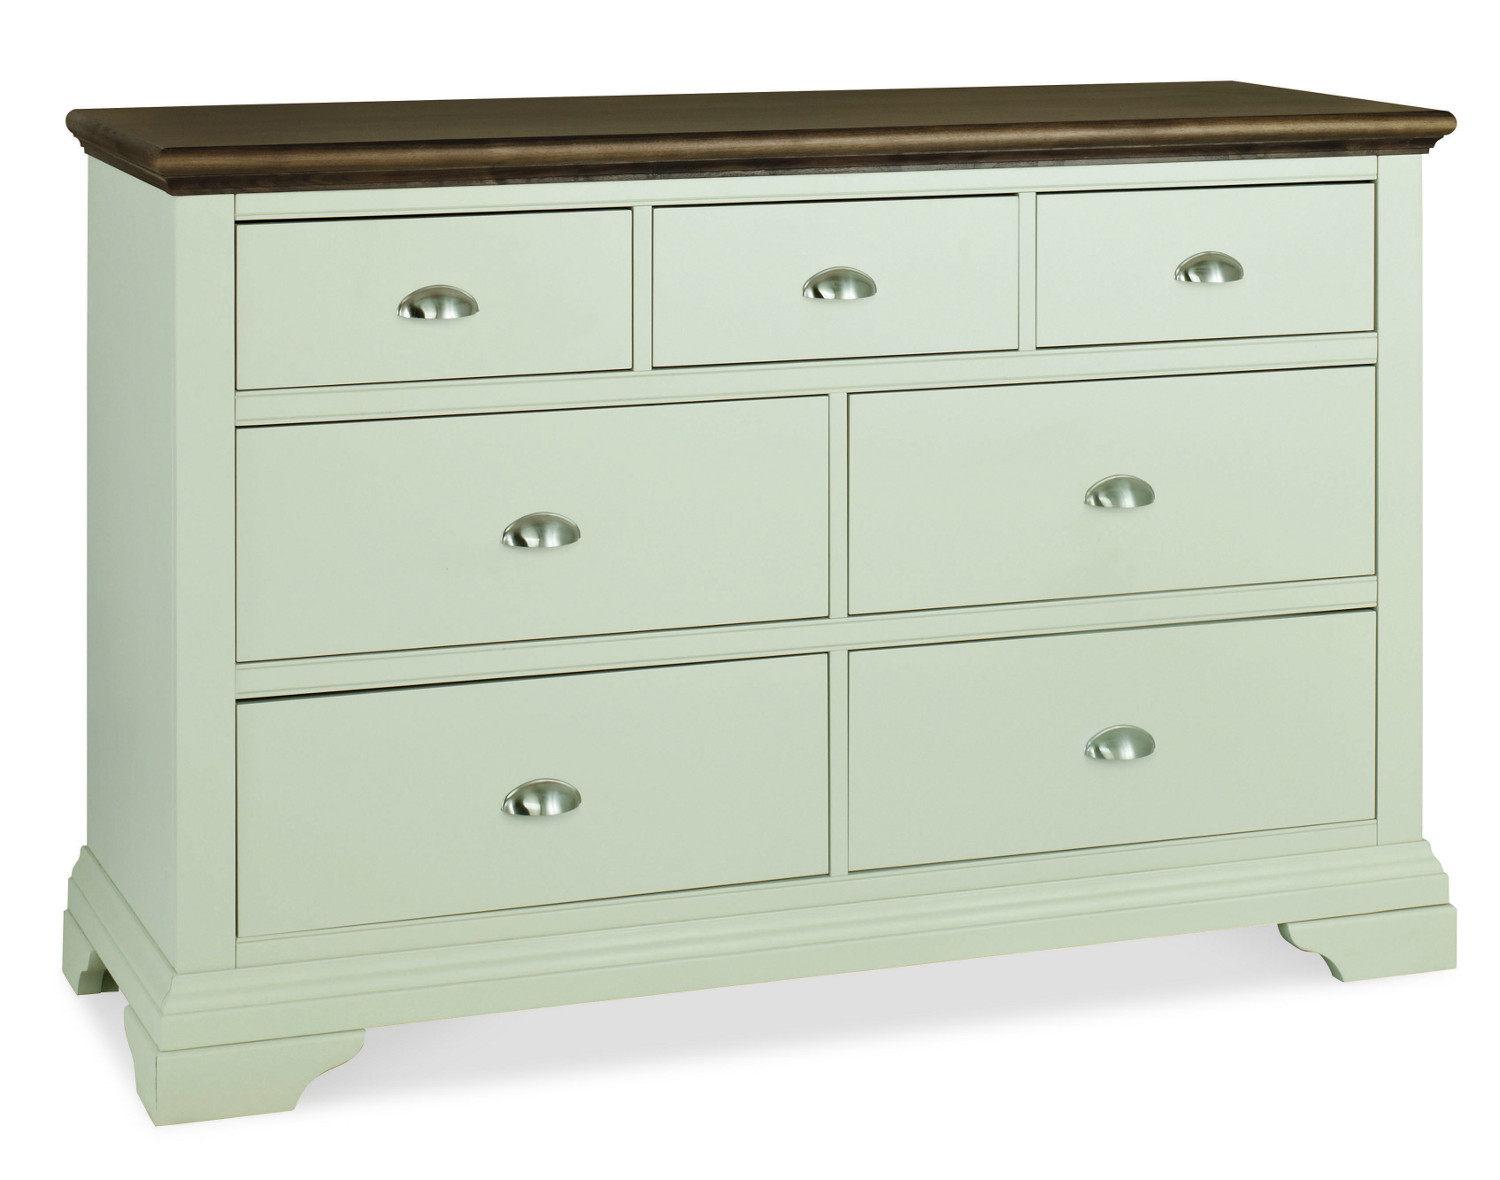 Hampstead Soft Grey and Walnut 3+4 Drawer Wide Chest (Hampstead Soft Grey and Walnut 3+4 Drawer Wide Chest)